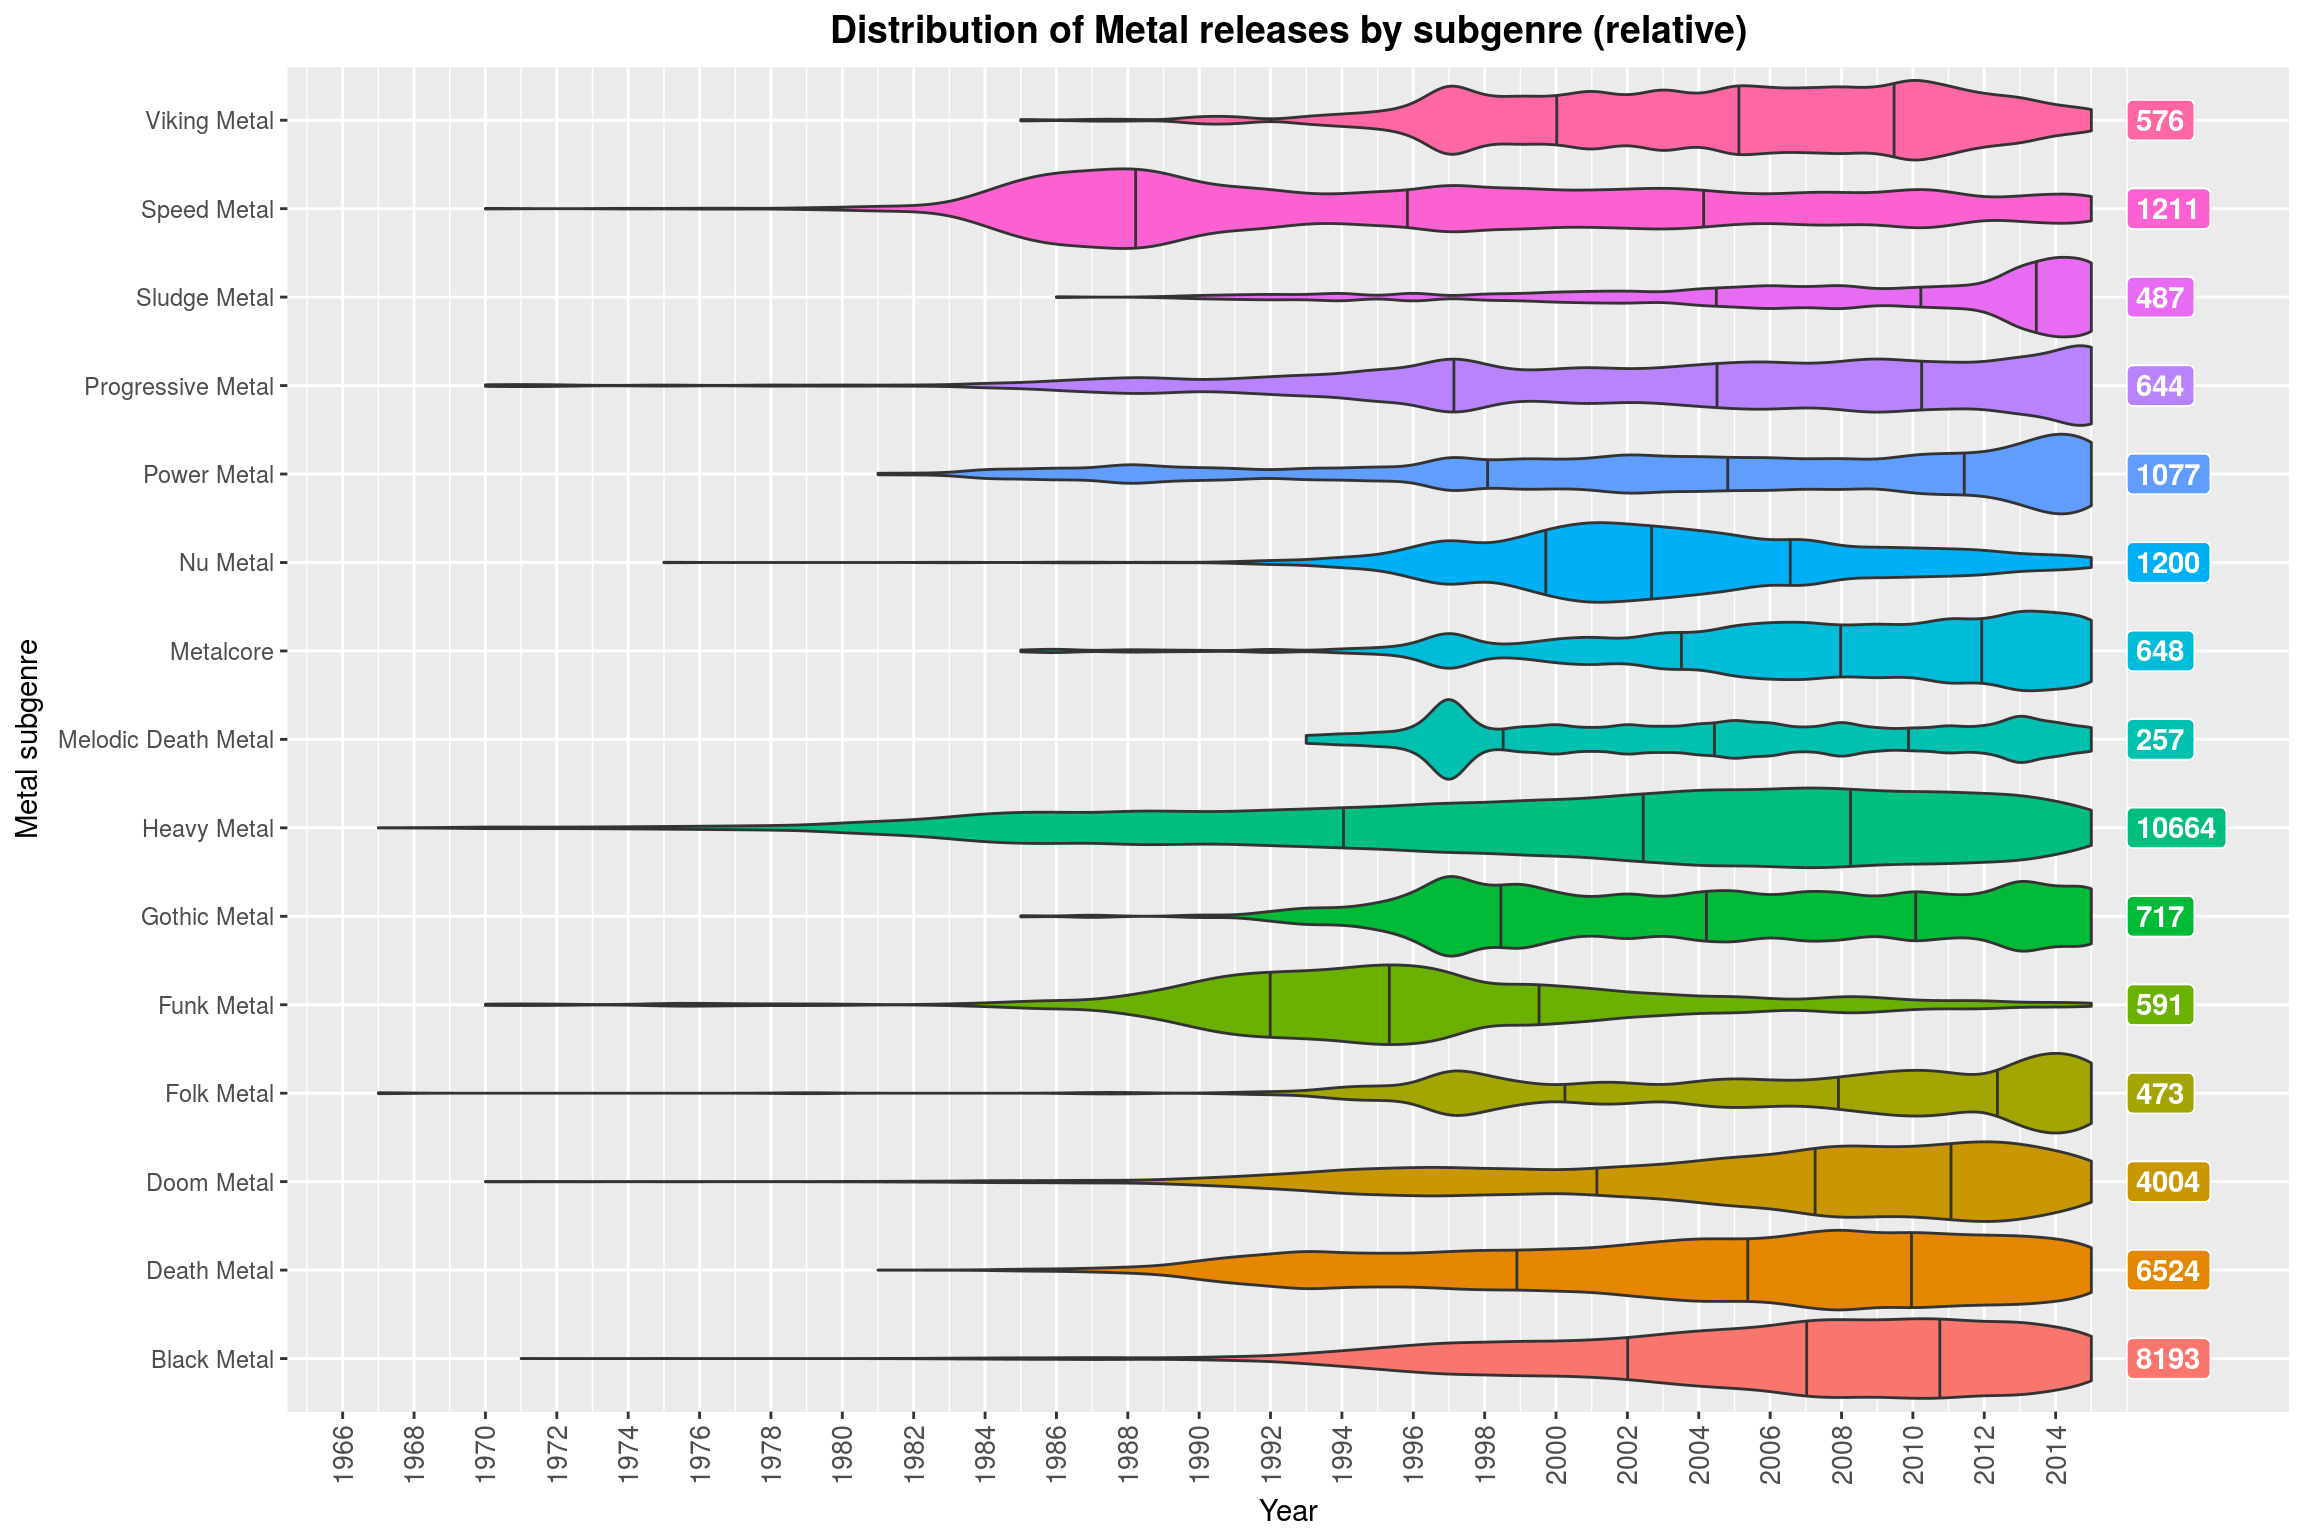 Distribution of Metal releases by subgenre (relative)